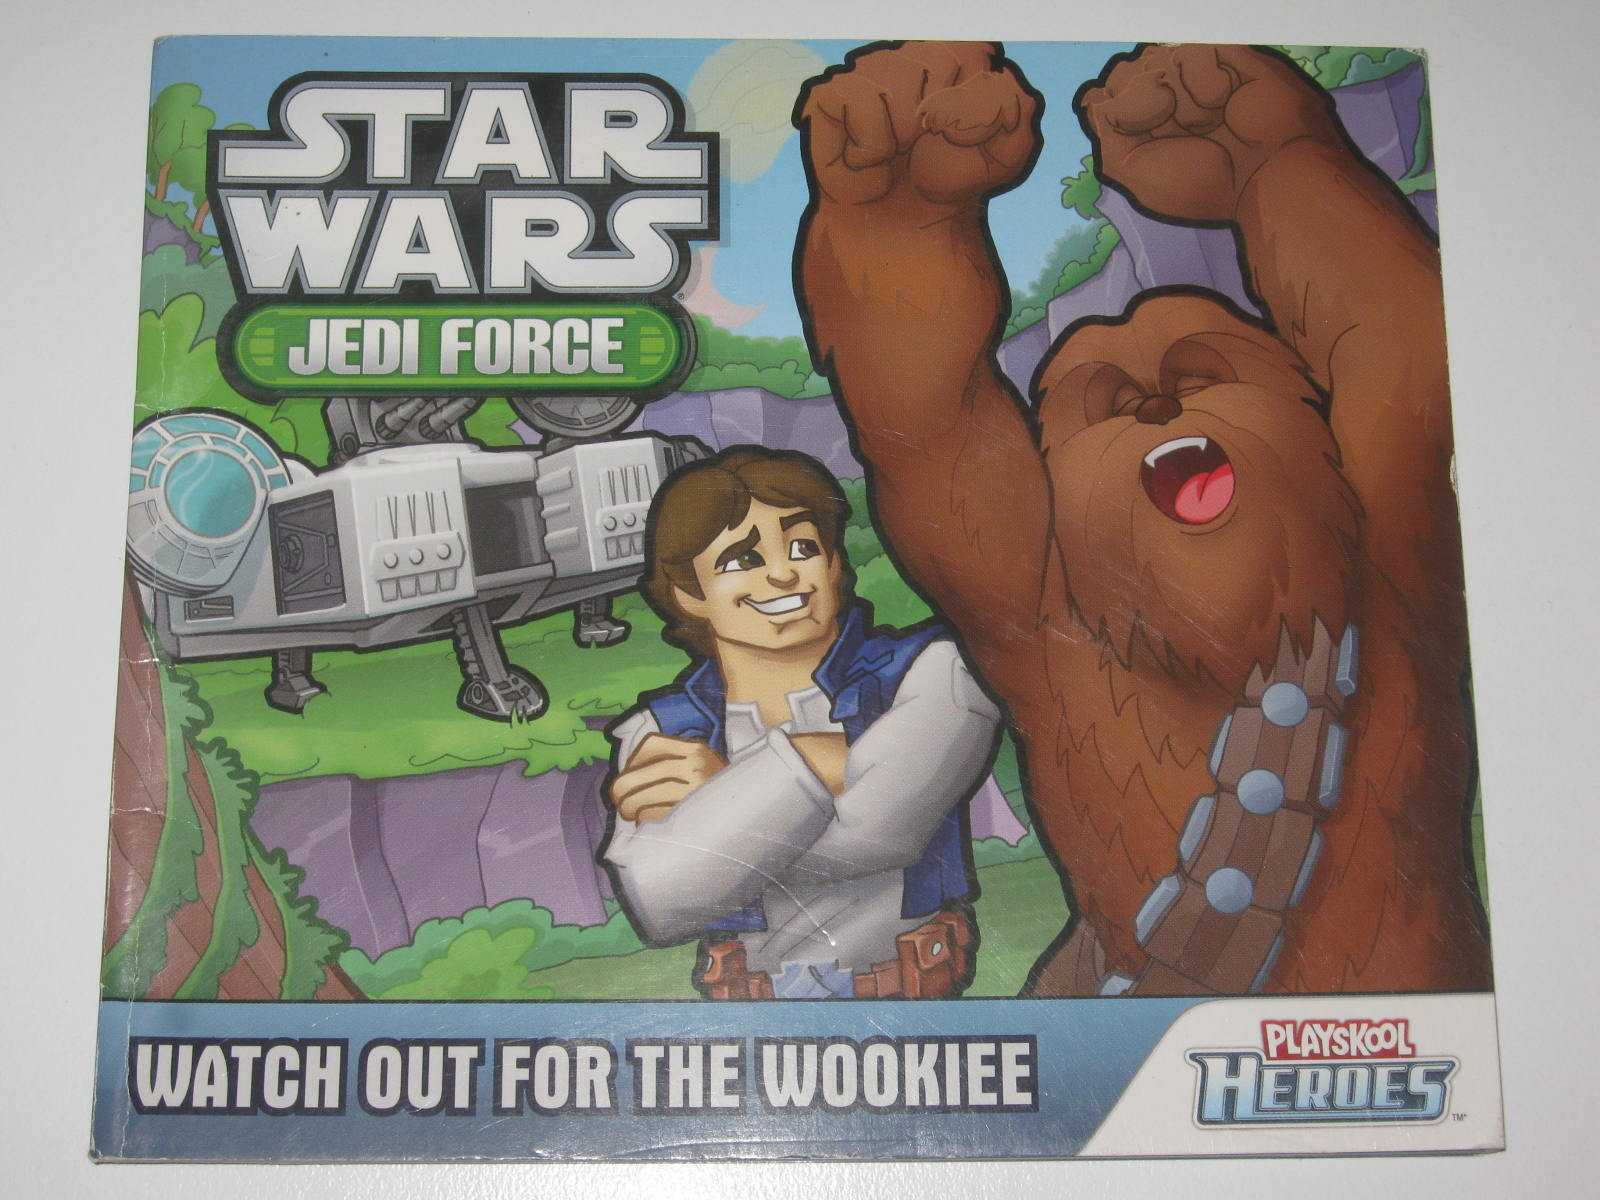 Image for Watch Out For the Wookiee - Star Wars Jedi Force Playskool Heroes Series